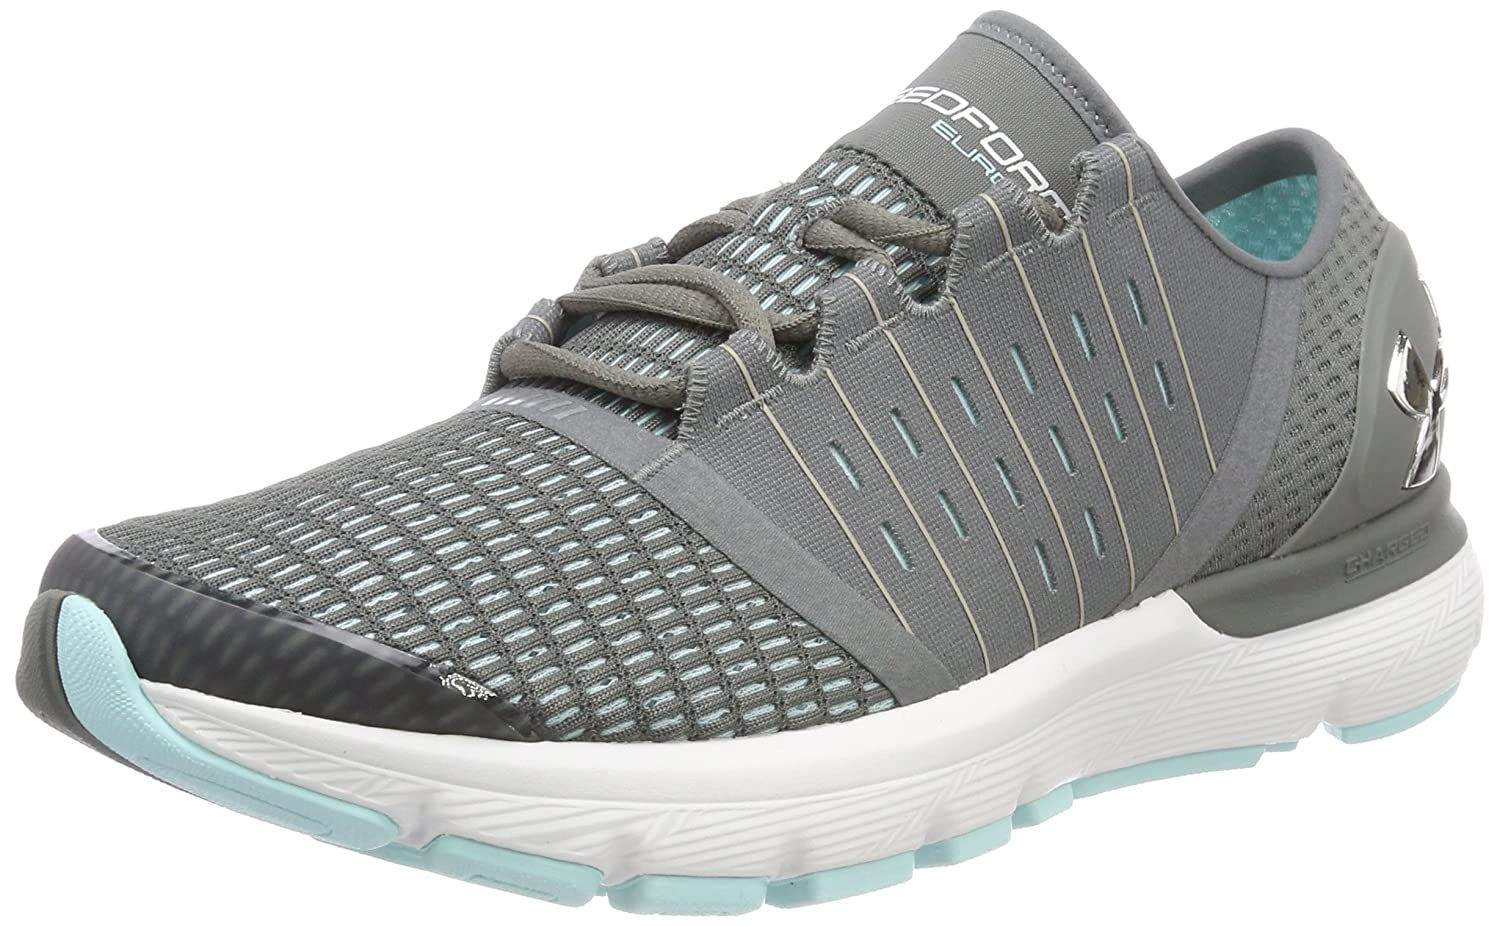 Under Armour Women's Speedform Europa Running Shoe B07121Y1MP 9 B(M) US|Grey